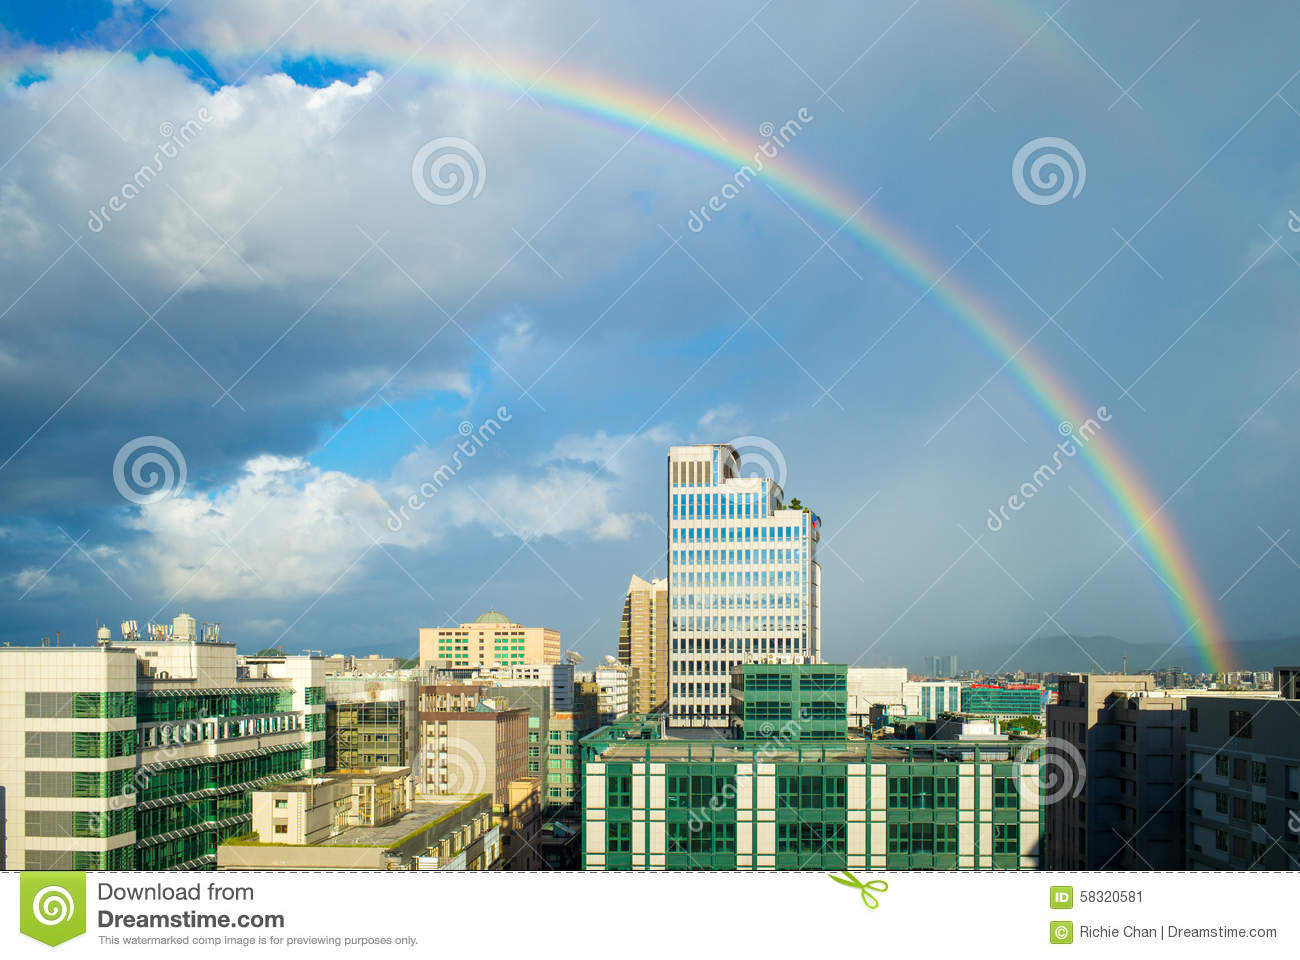 cityscapes buildings rainbow city - photo #16